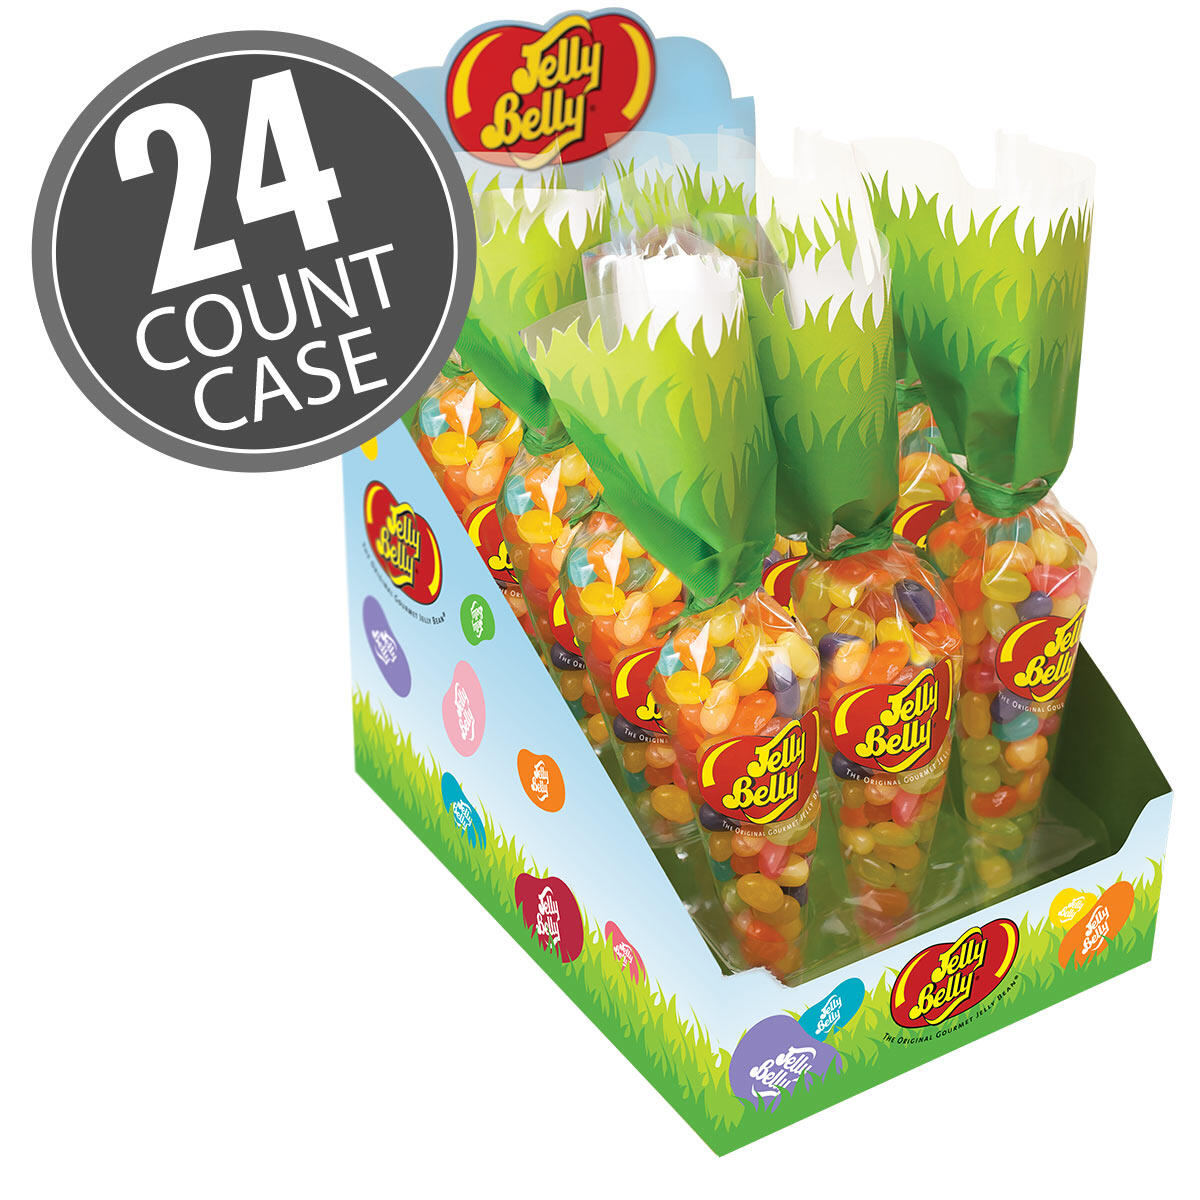 Jelly Belly Spring Mix Baby Carrot Bag 24-Count Case